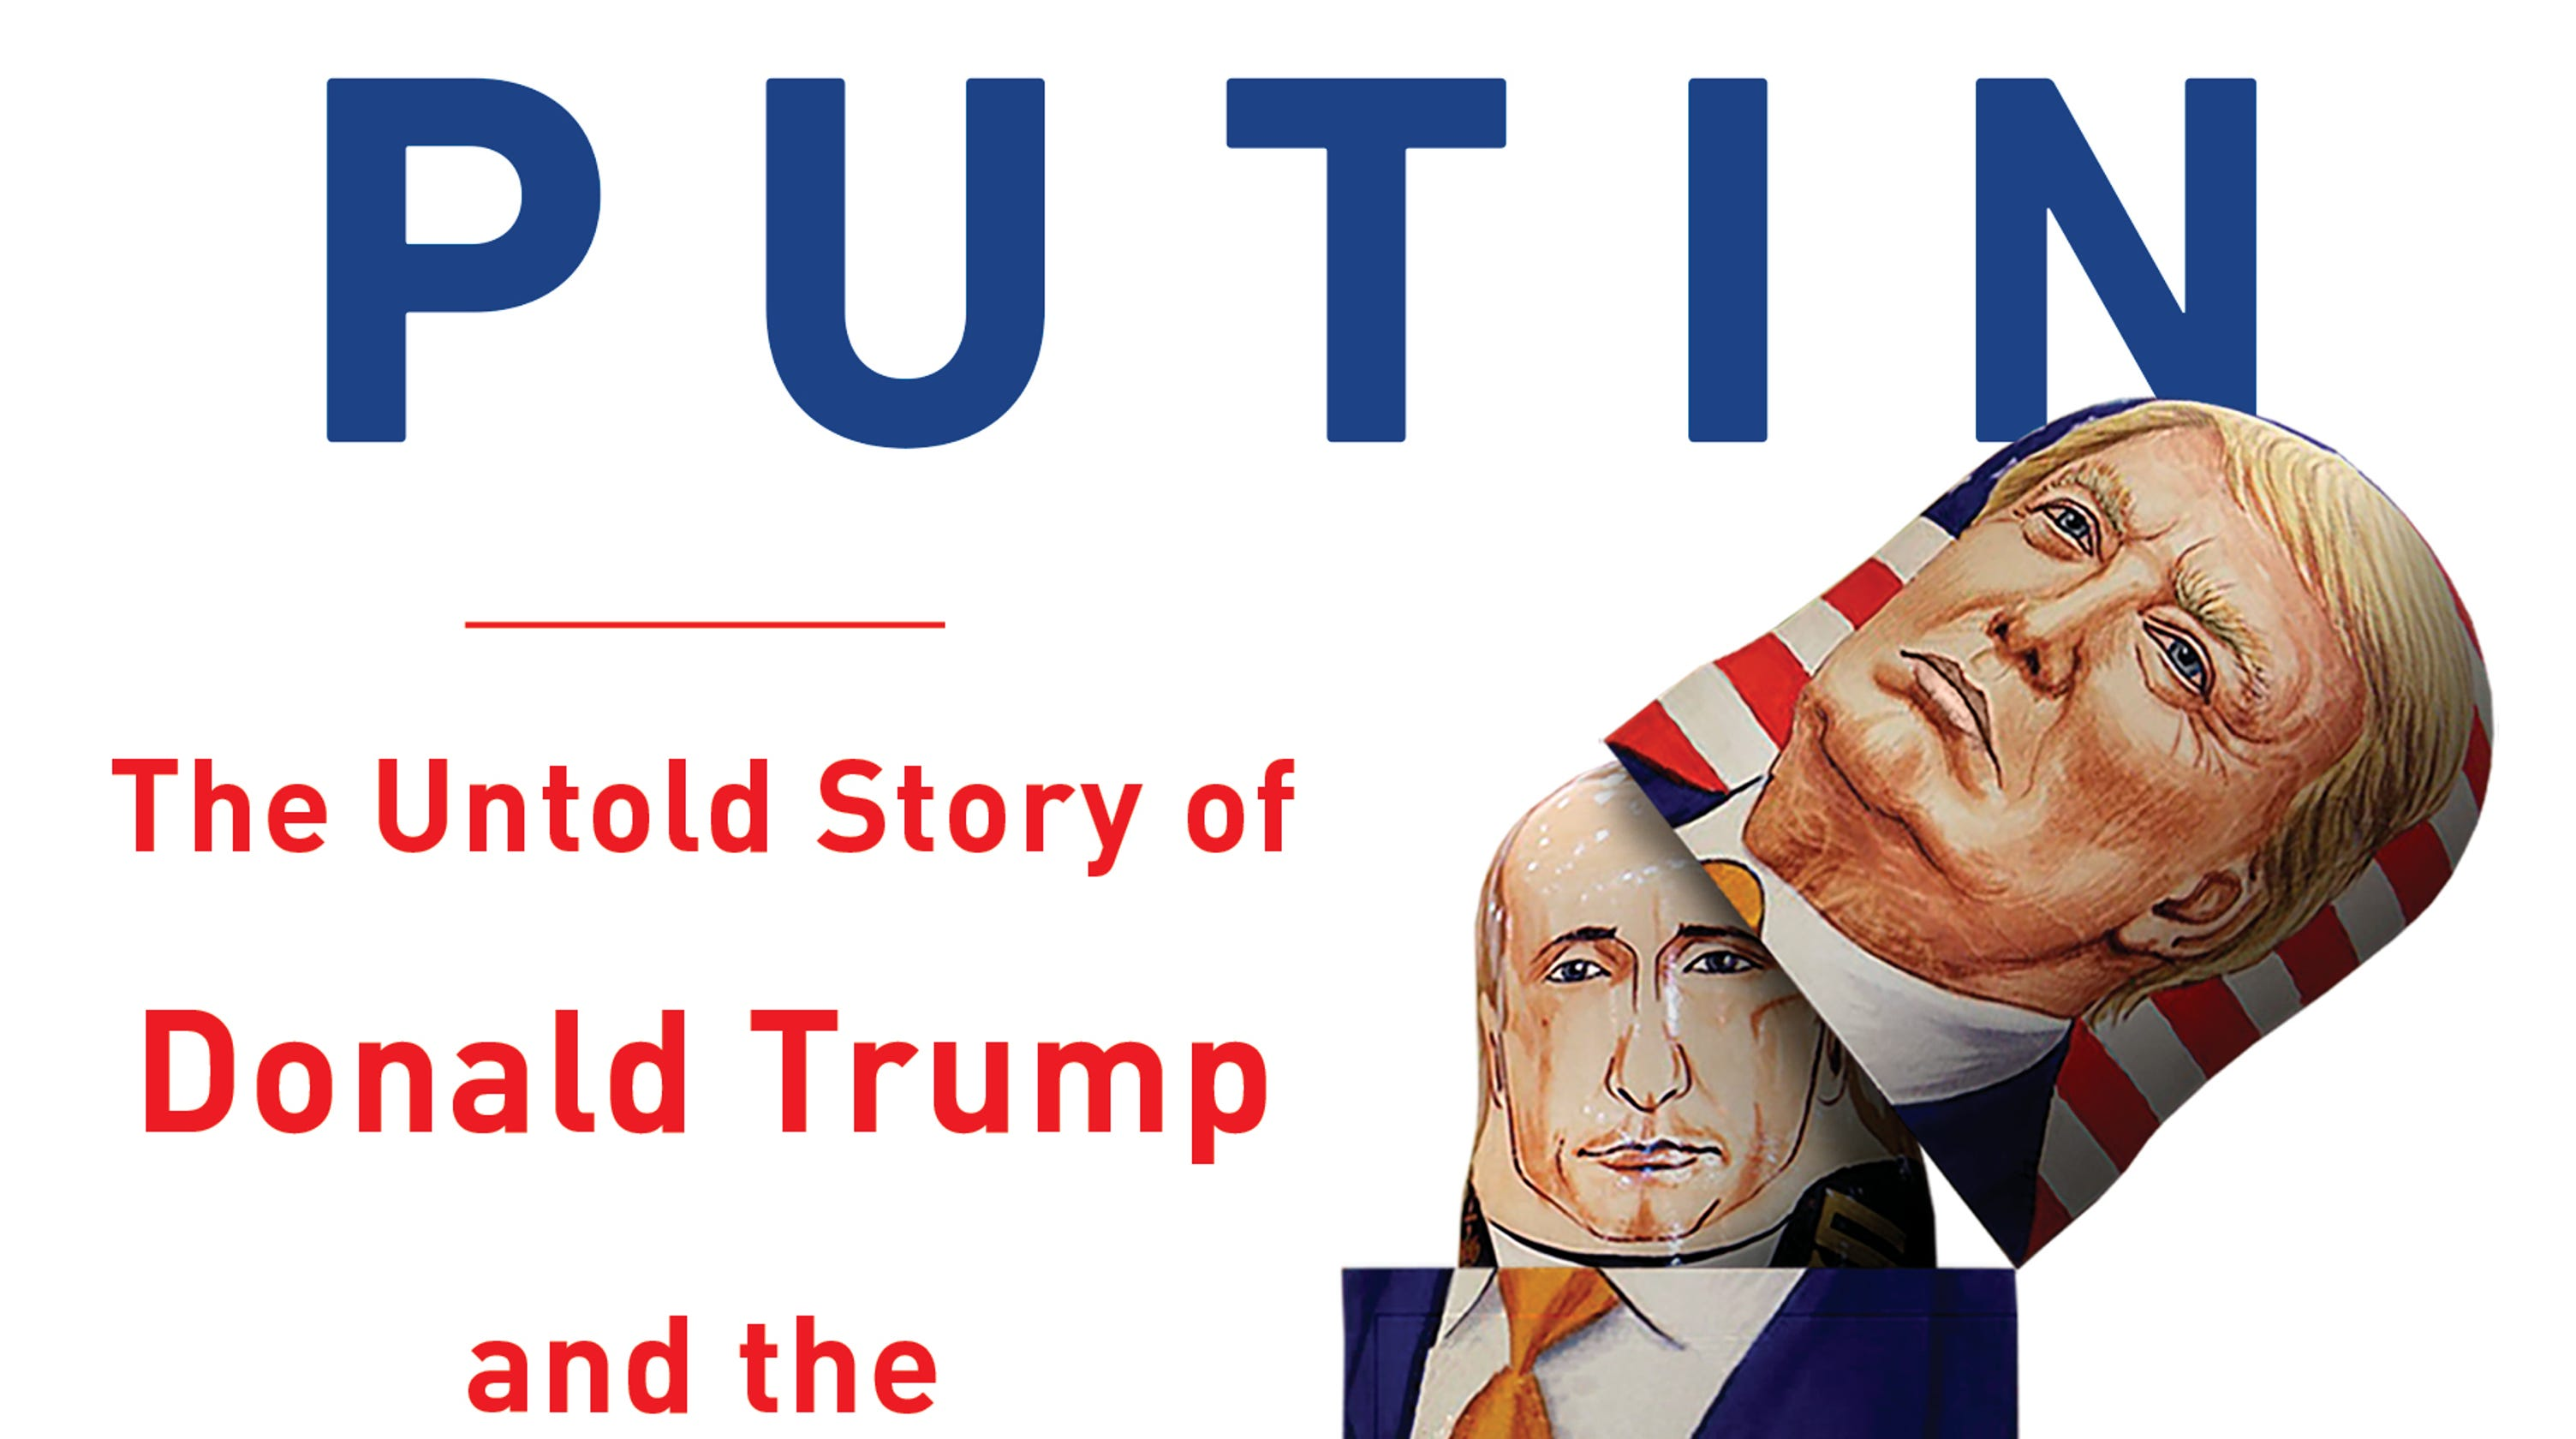 Craig Unger's new book looks into ties between Donald Trump, Russia